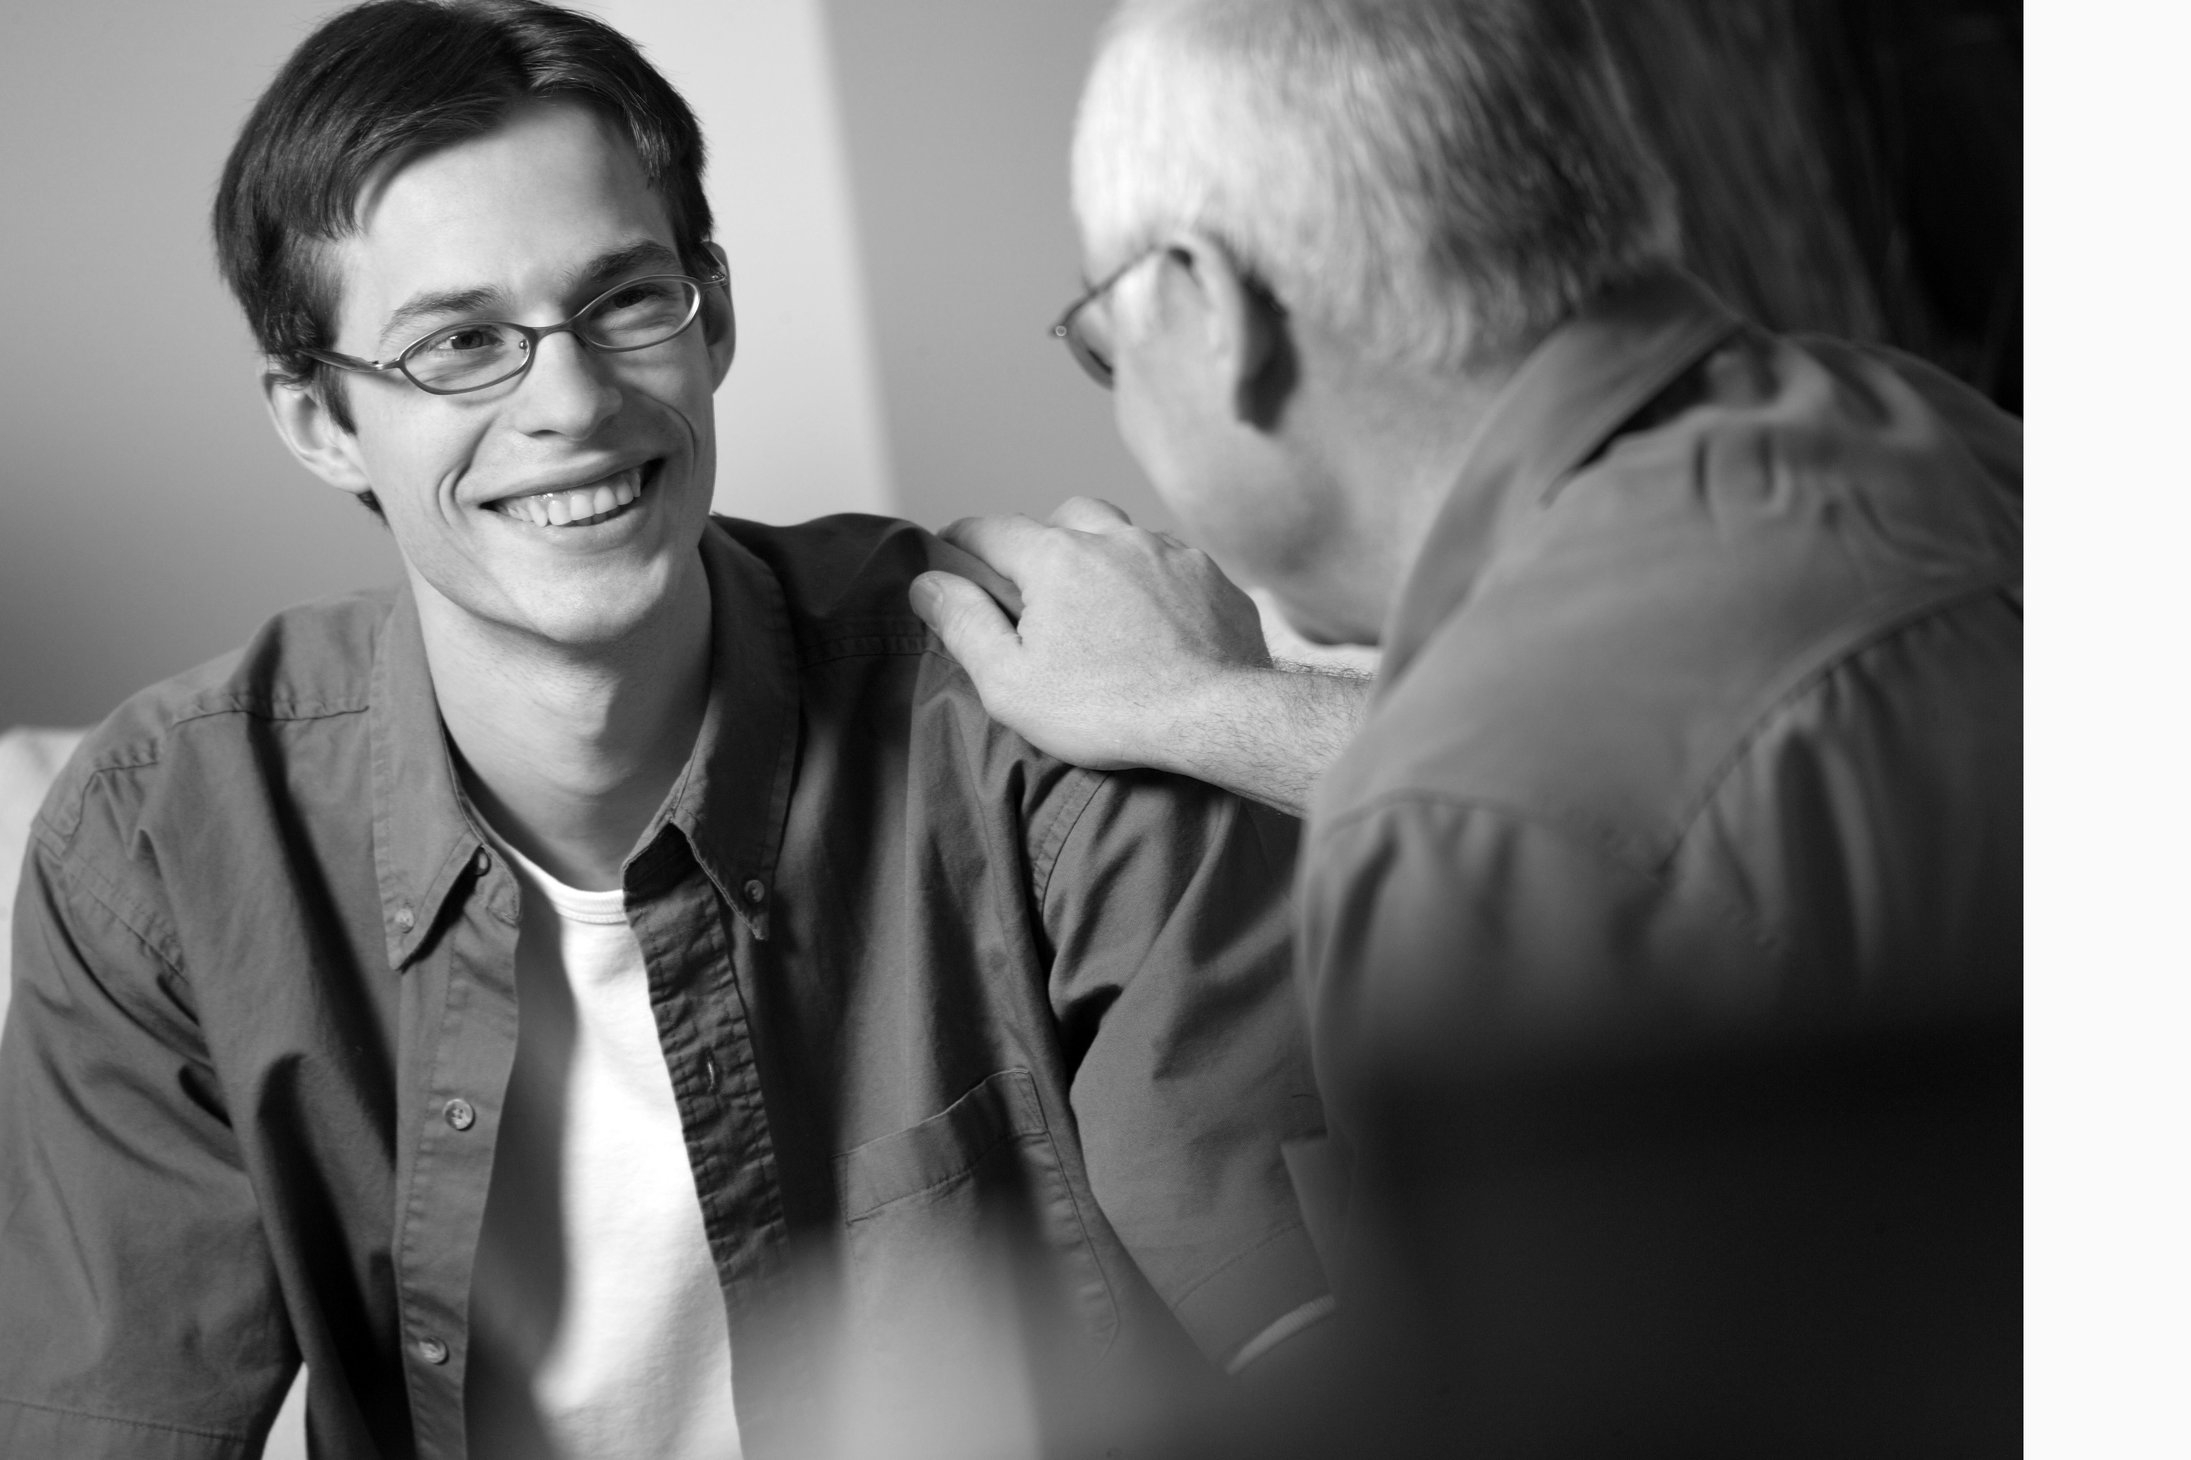 Supportive Living Programs - These private programs are designed for adults with differing abilities to live independently due to cognitive, neurological or mental health impairments. Most offer an array of case management services to assist residents with job coaching, independent living skills, financial management and recreational activities. All provide a sense of community, respect and support for adults who may need longer-term assistance.